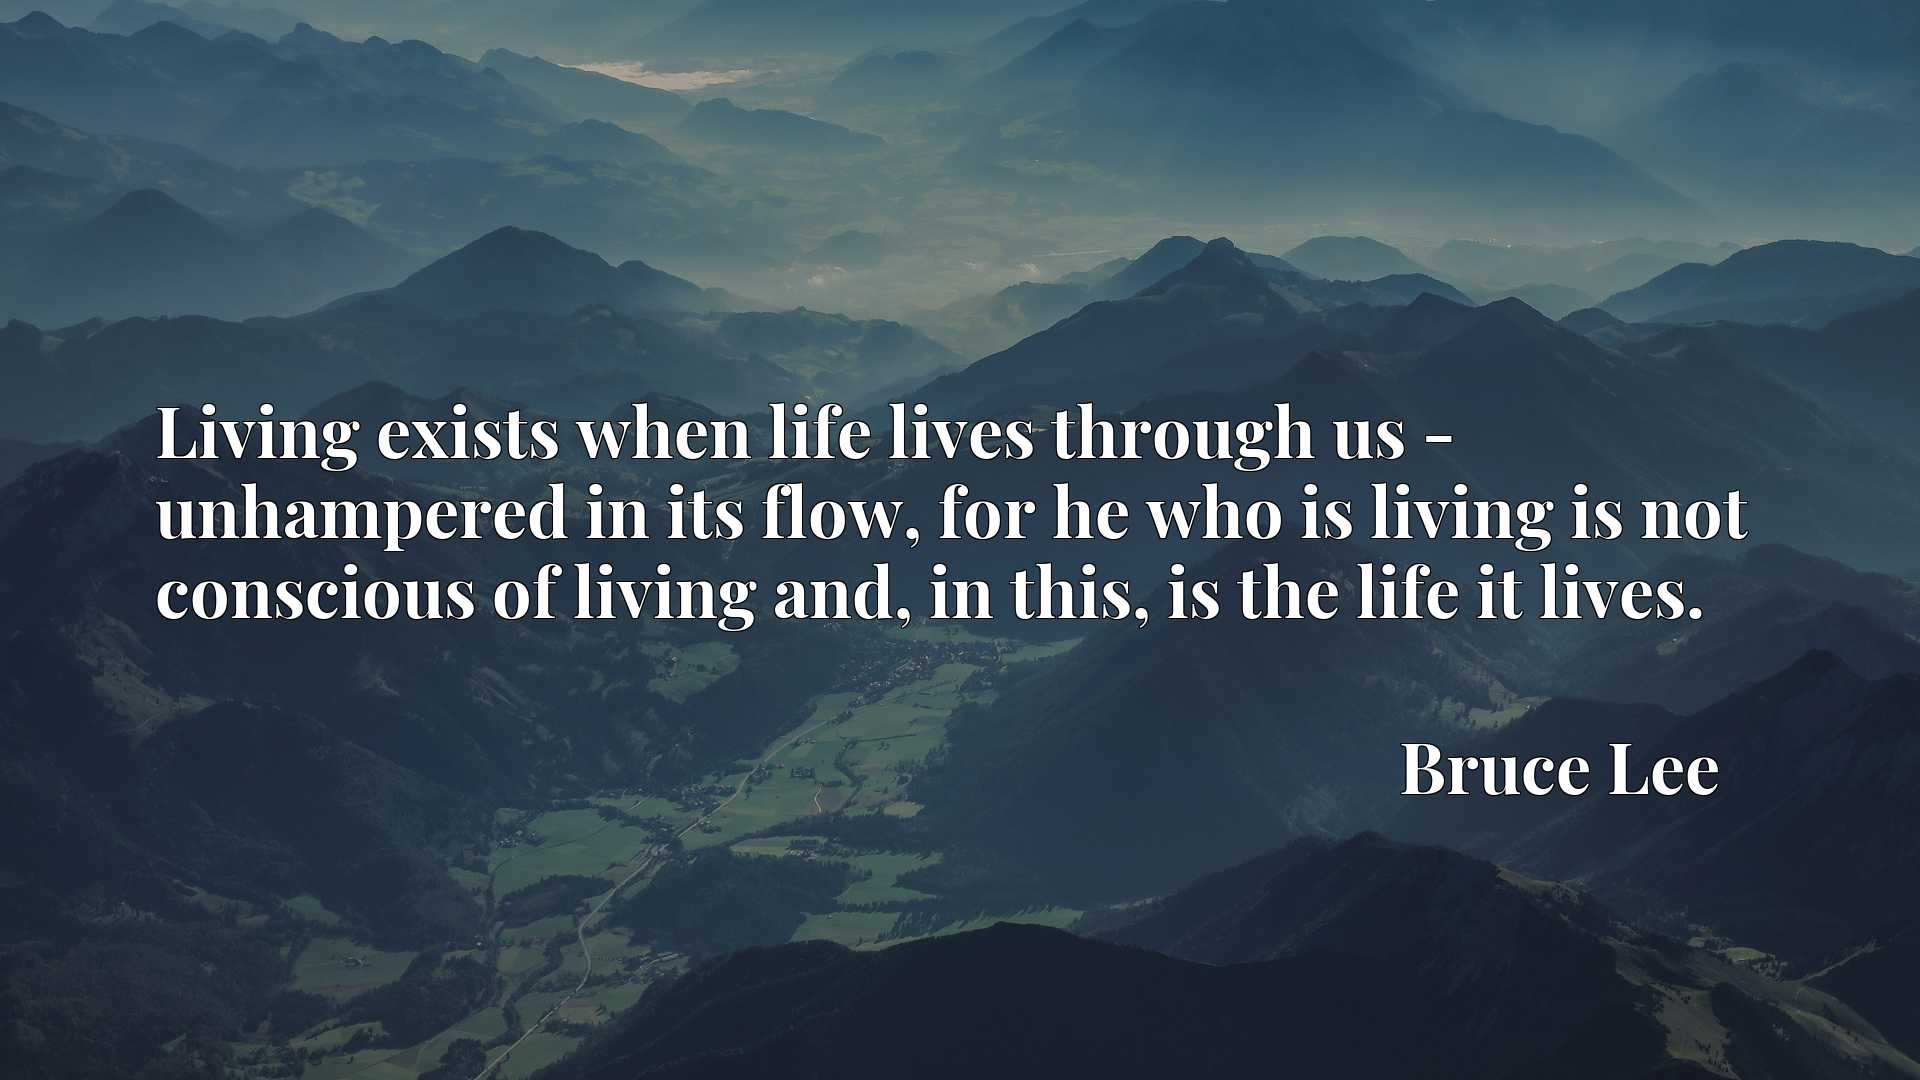 Living exists when life lives through us - unhampered in its flow, for he who is living is not conscious of living and, in this, is the life it lives.